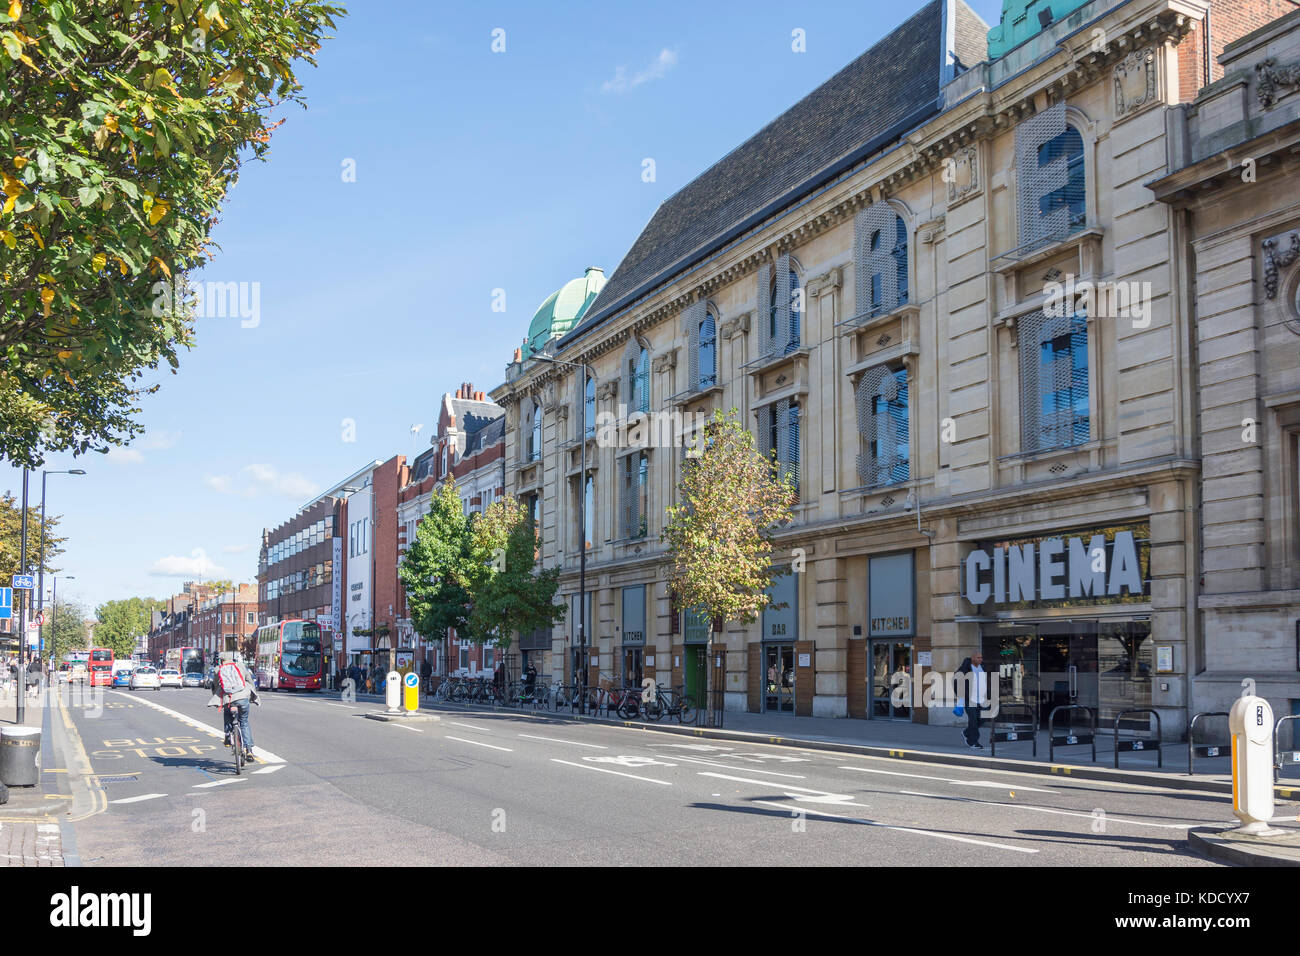 Hackney Picturehouse, Mare Street, Hackney Central, London Borough of Hackney, Greater London, England, United Kingdom - Stock Image